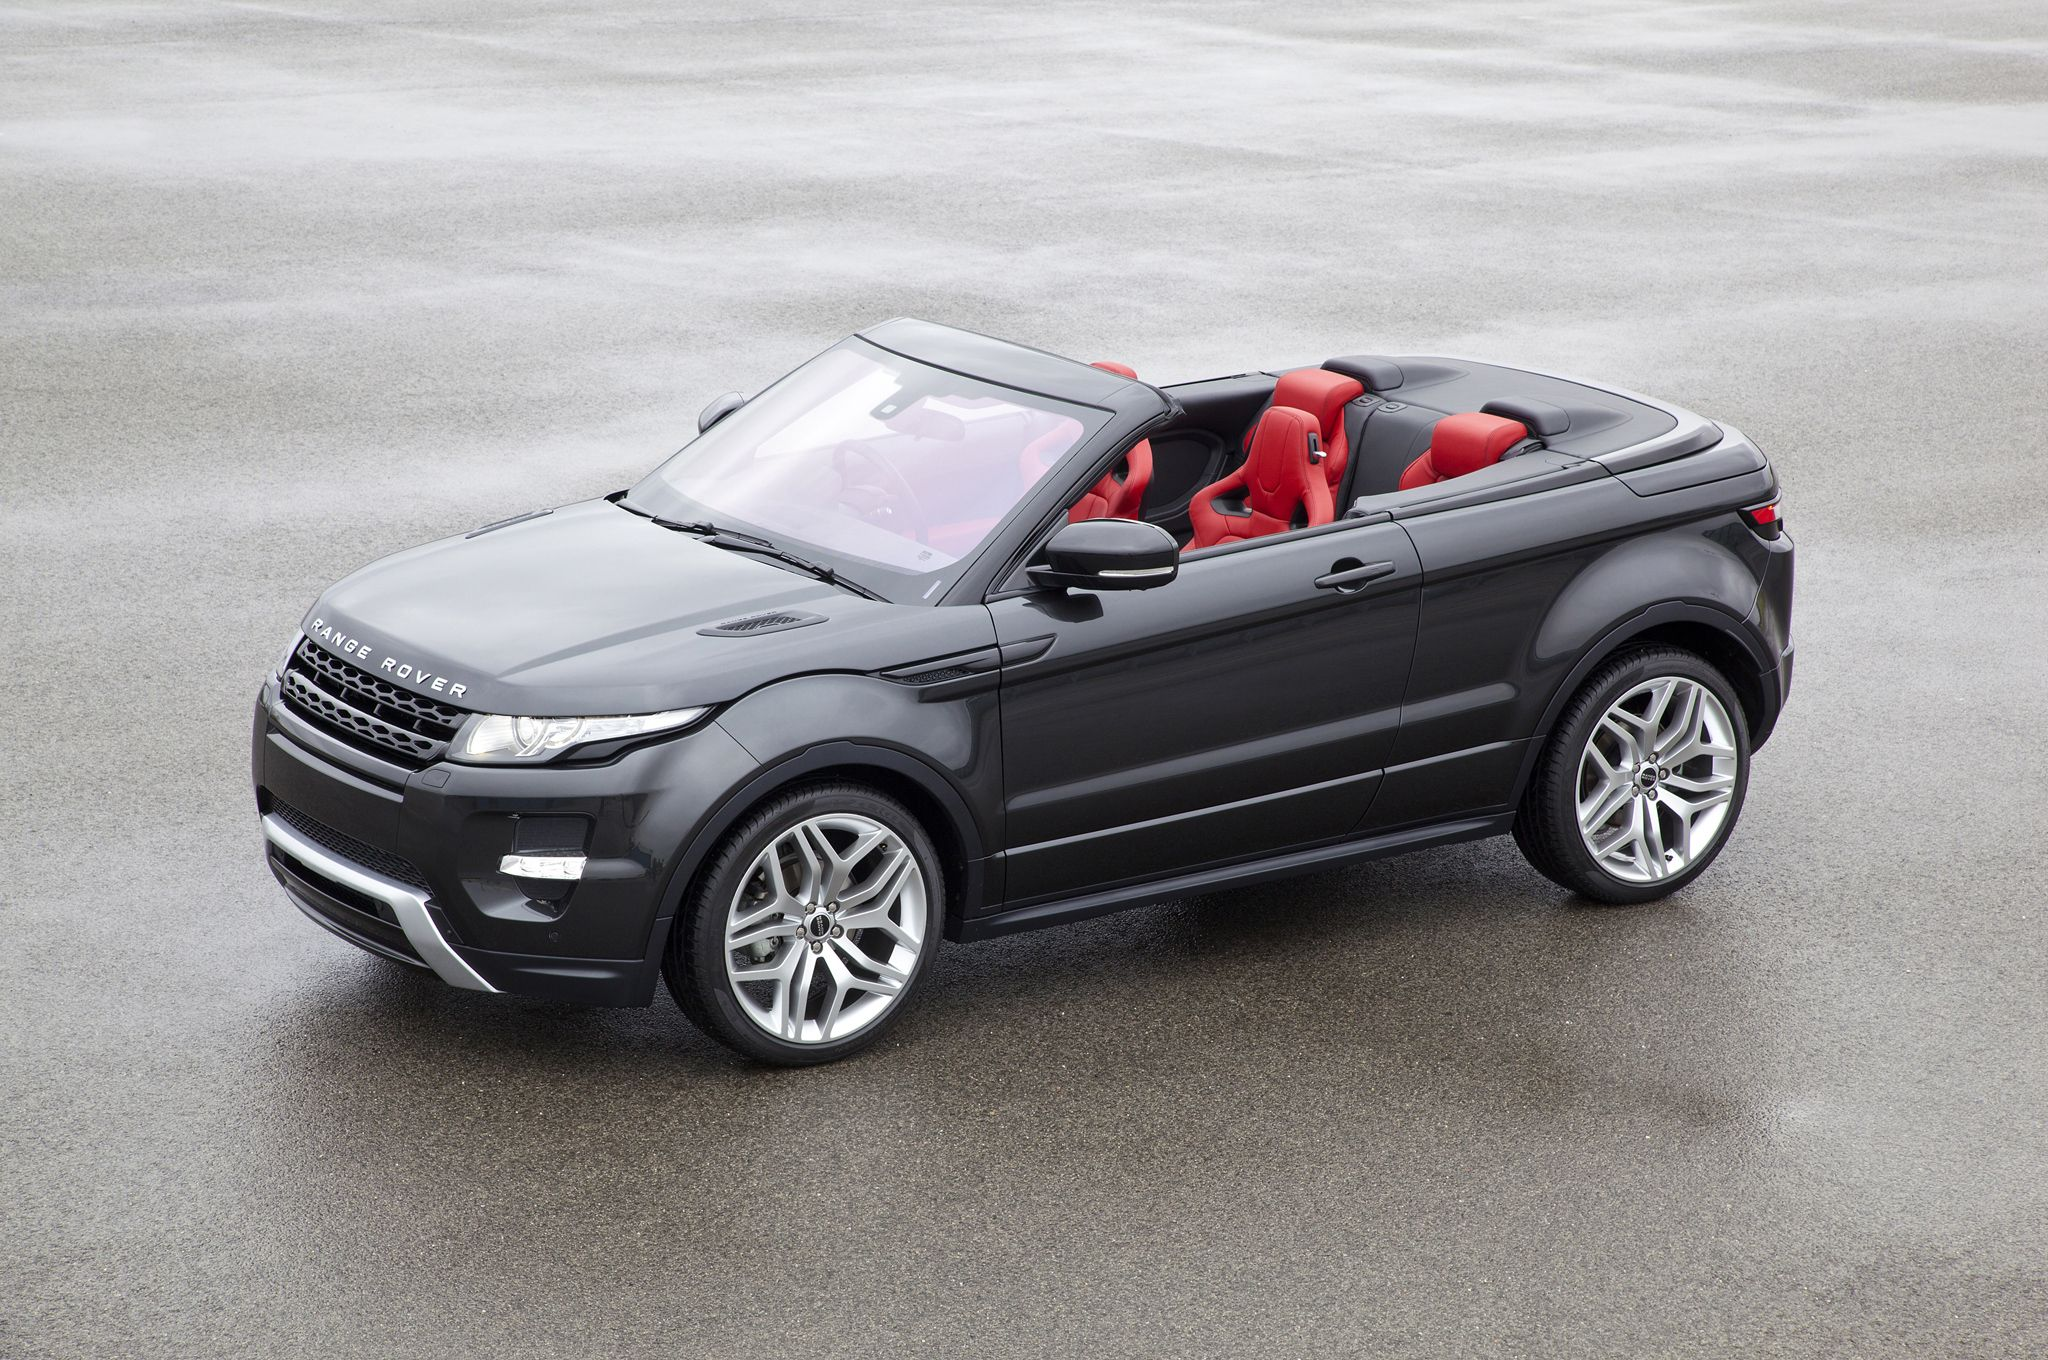 Land Rover Is Coming Out With A New Drop Top Suv Range Rover Evoque Convertible Range Rover Convertible Range Rover